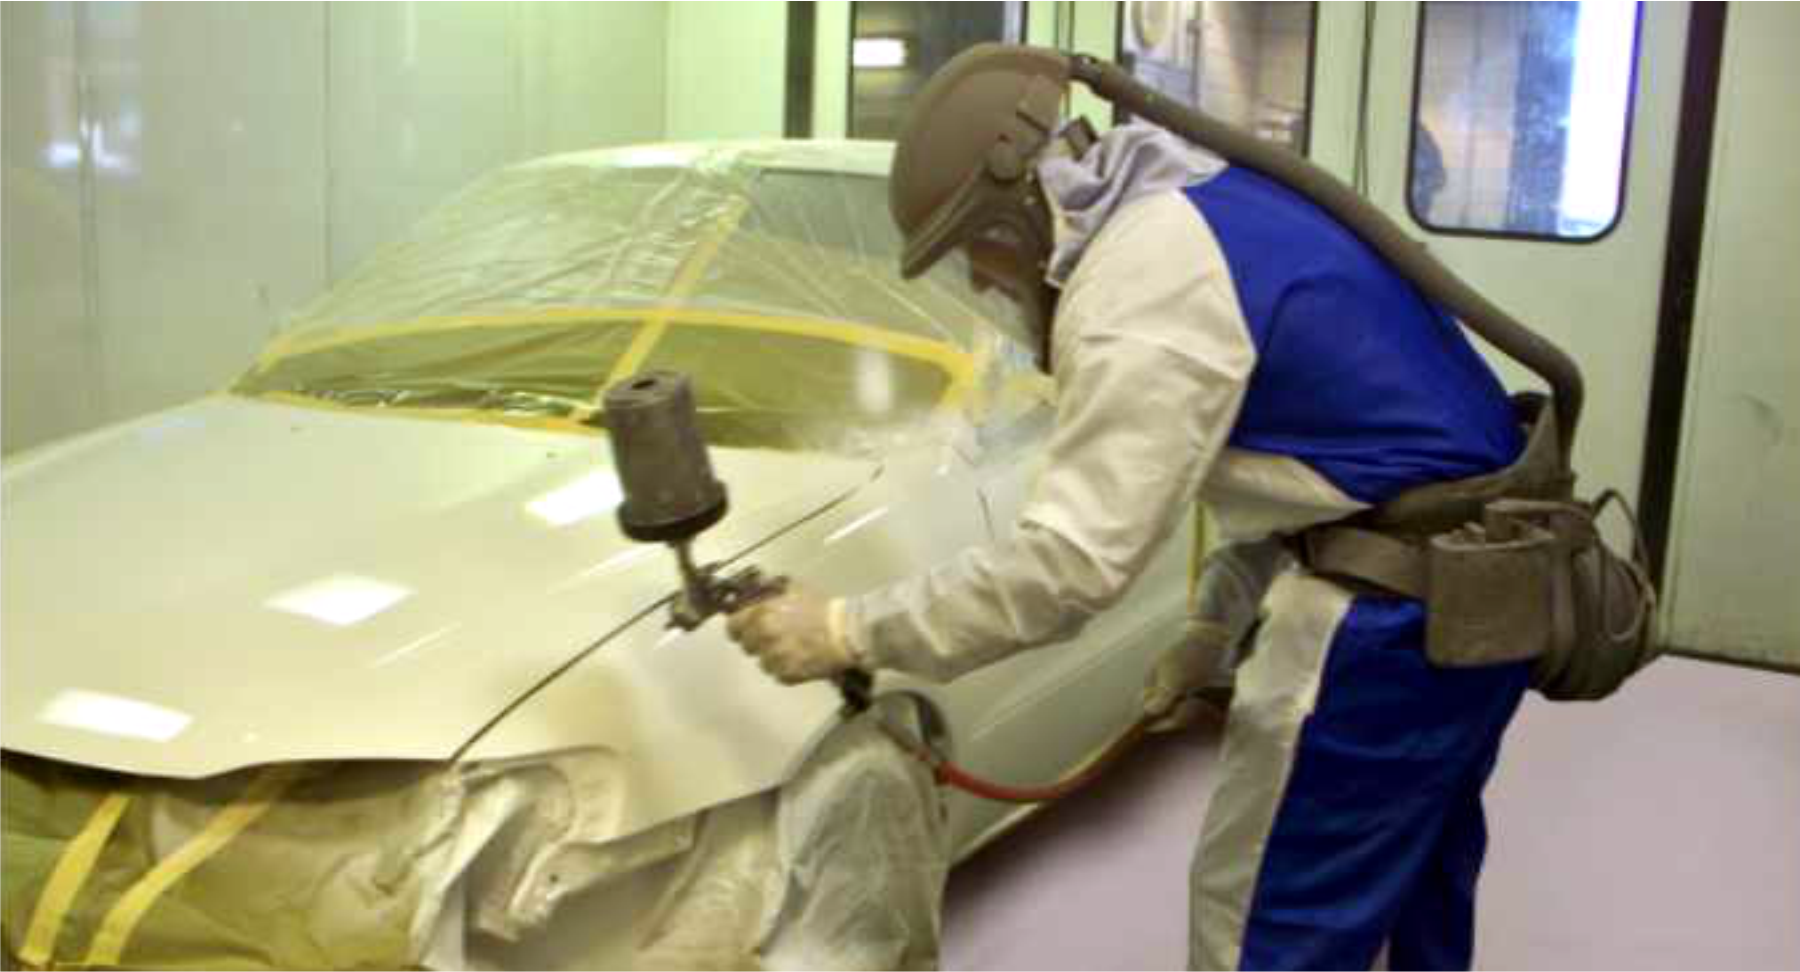 Professional Painting Refinishing and Collision Repairs in Oxnard, Ventura, Thousand Oaks counties in California